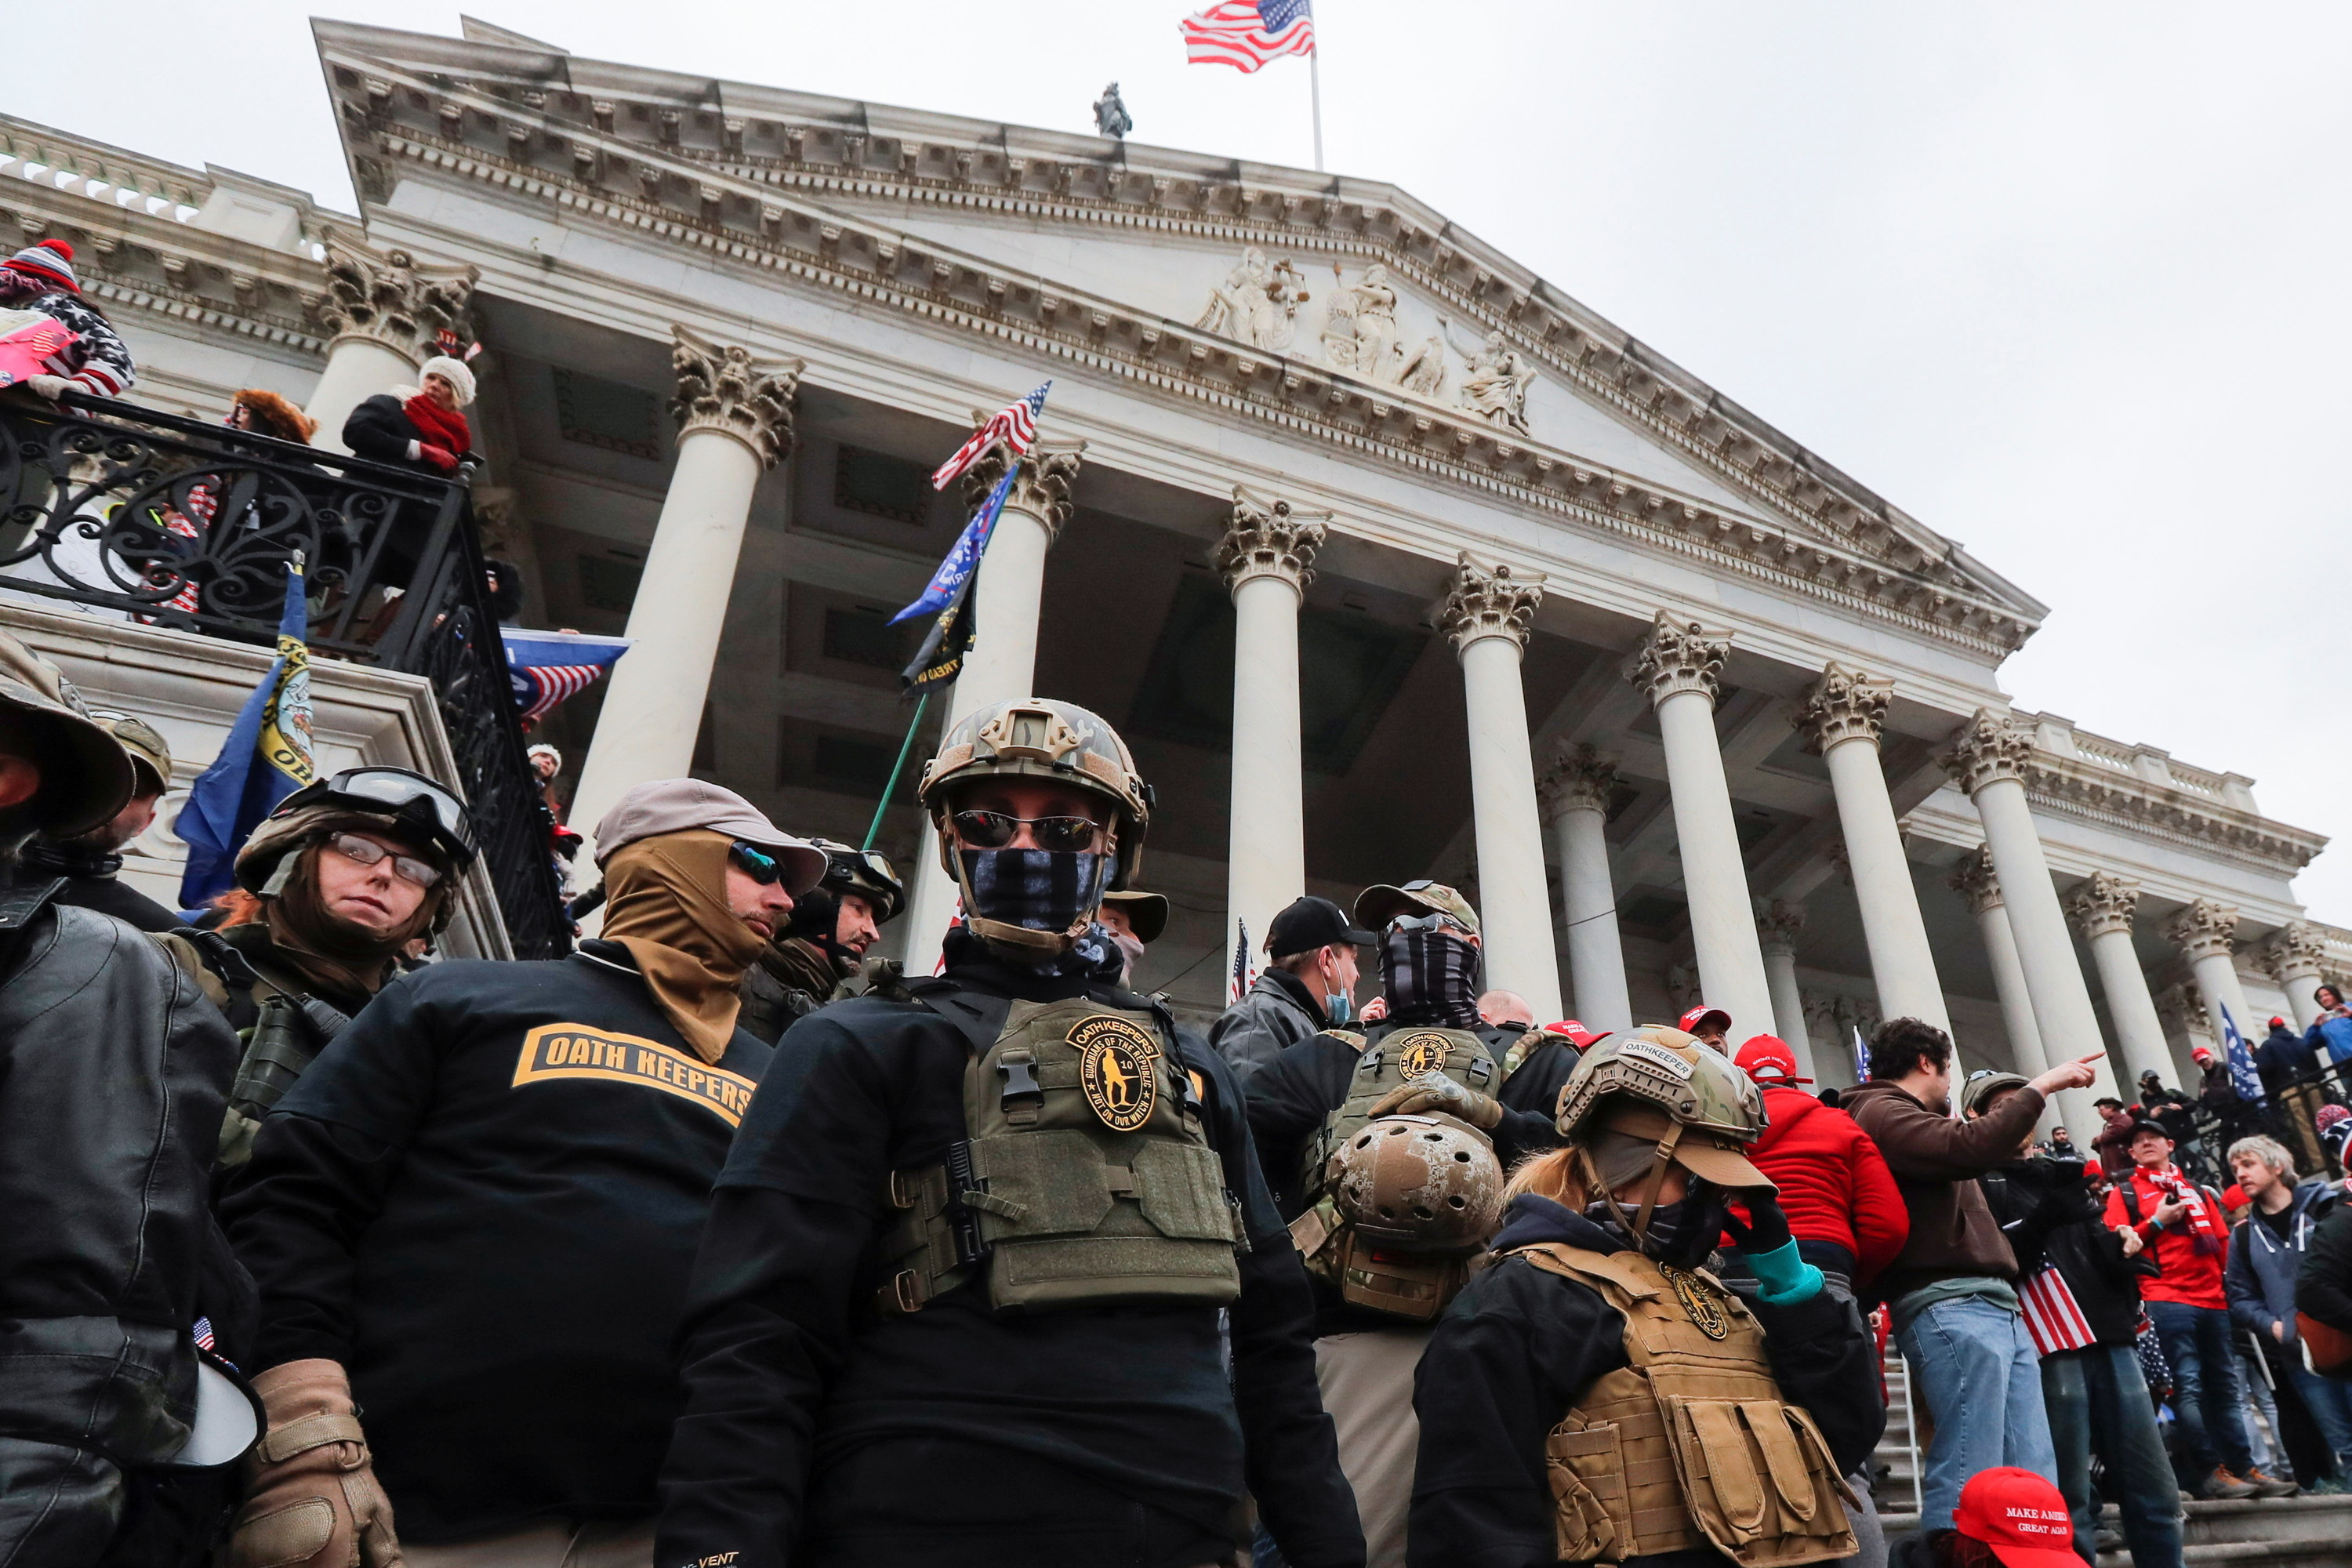 People wearing military-style tactical gear stand among a crowd outside the Capitol building in DC